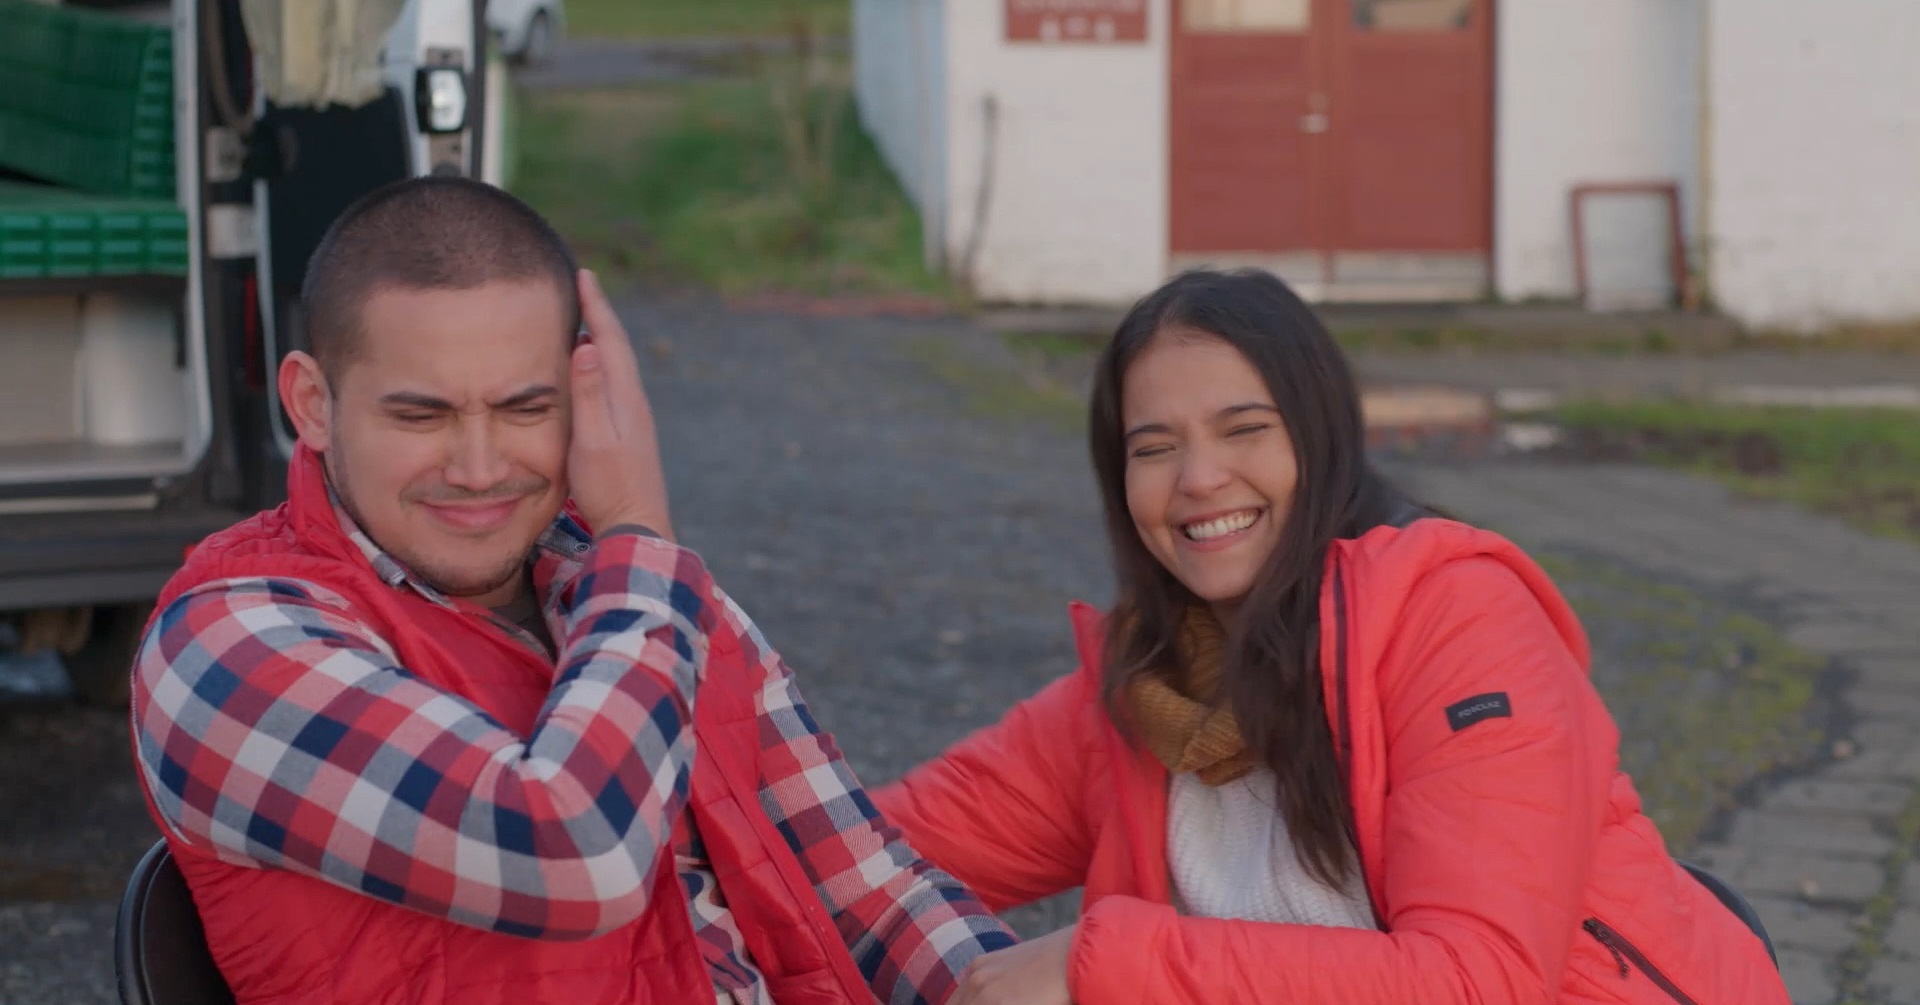 Friends off and on screen, Paolo Contis and Alessandra de Rossi enjoying each other's company in Iceland